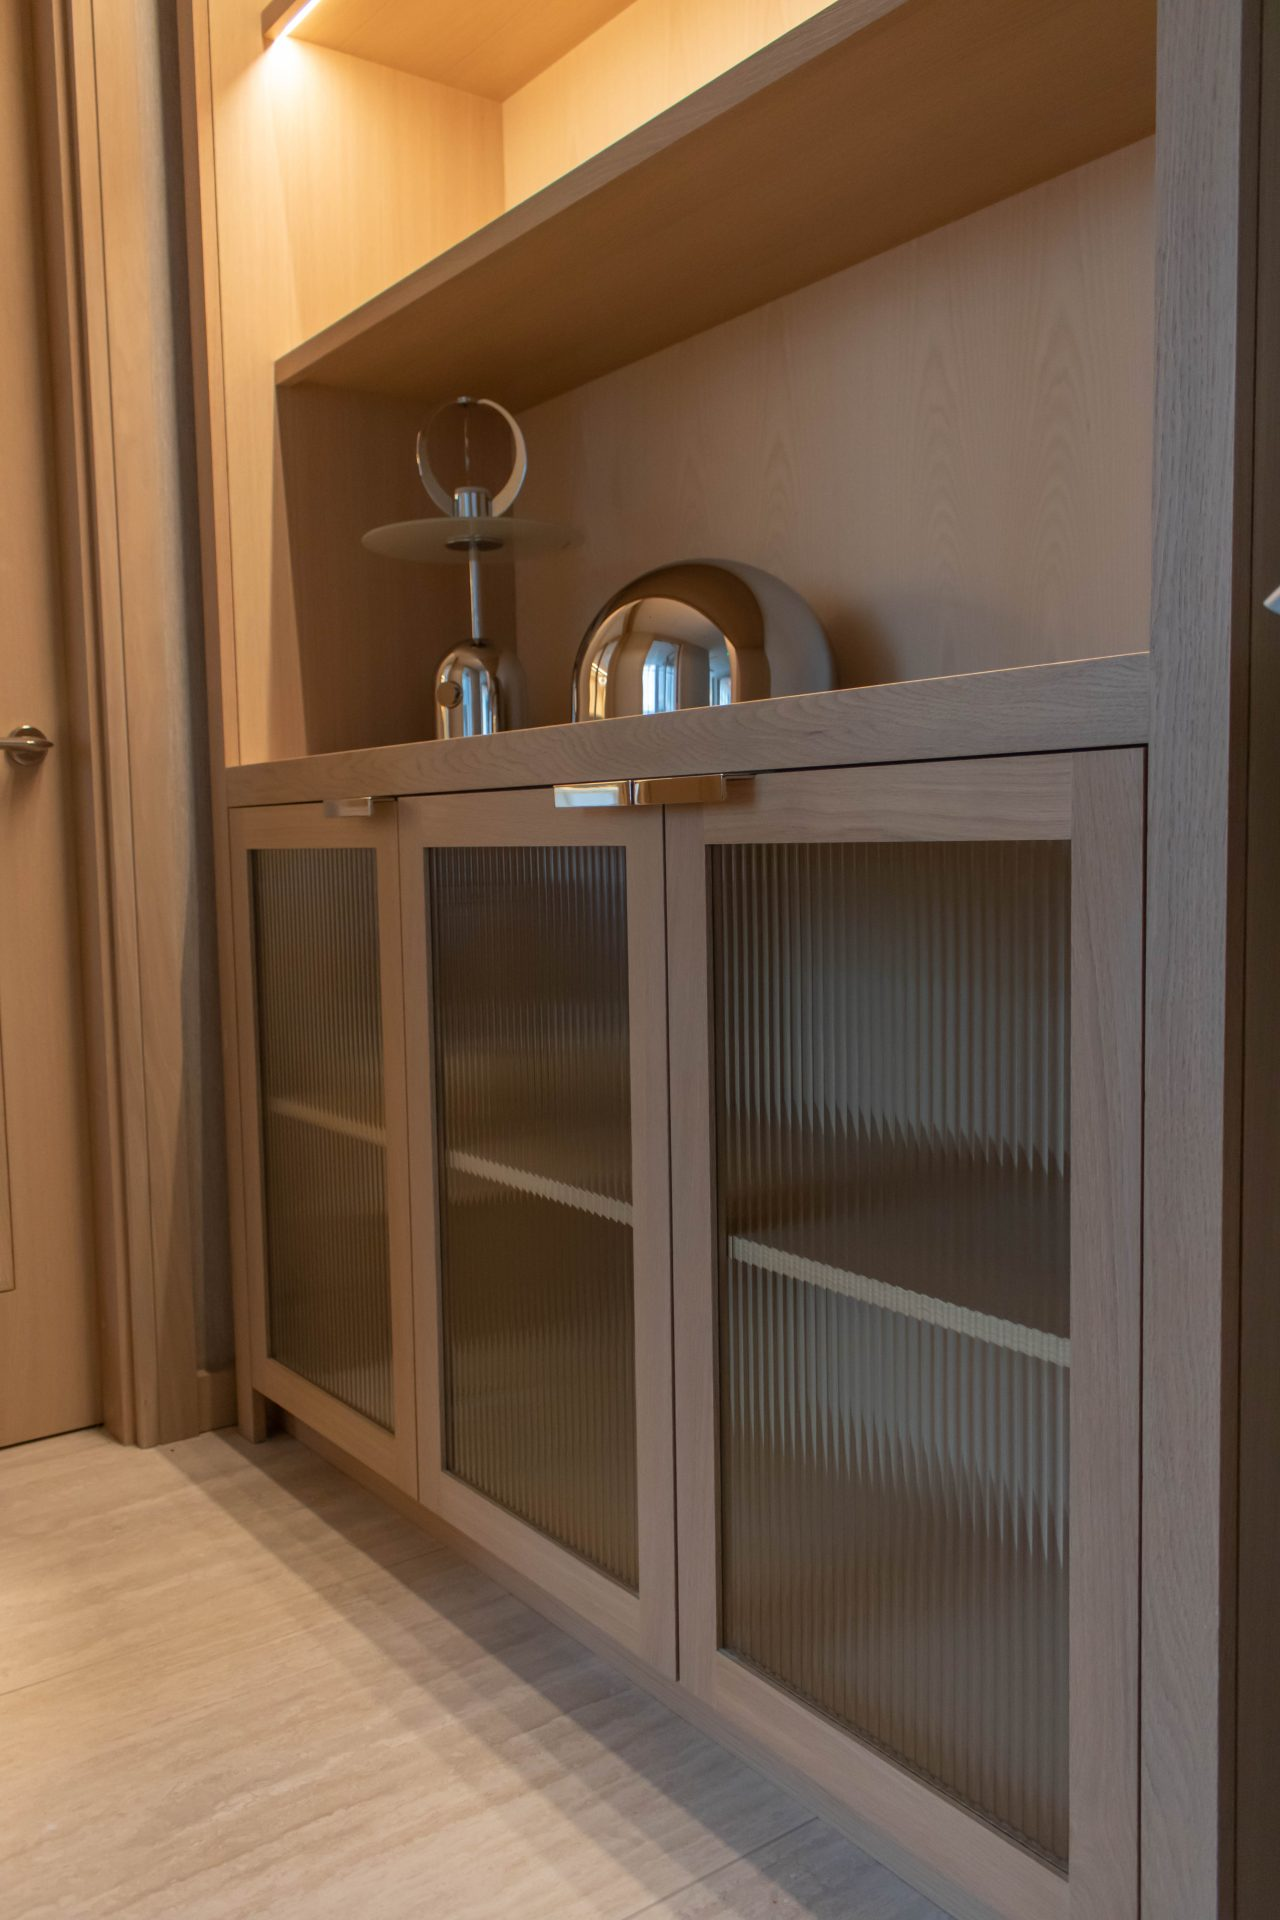 Kandd Cabinetry interior